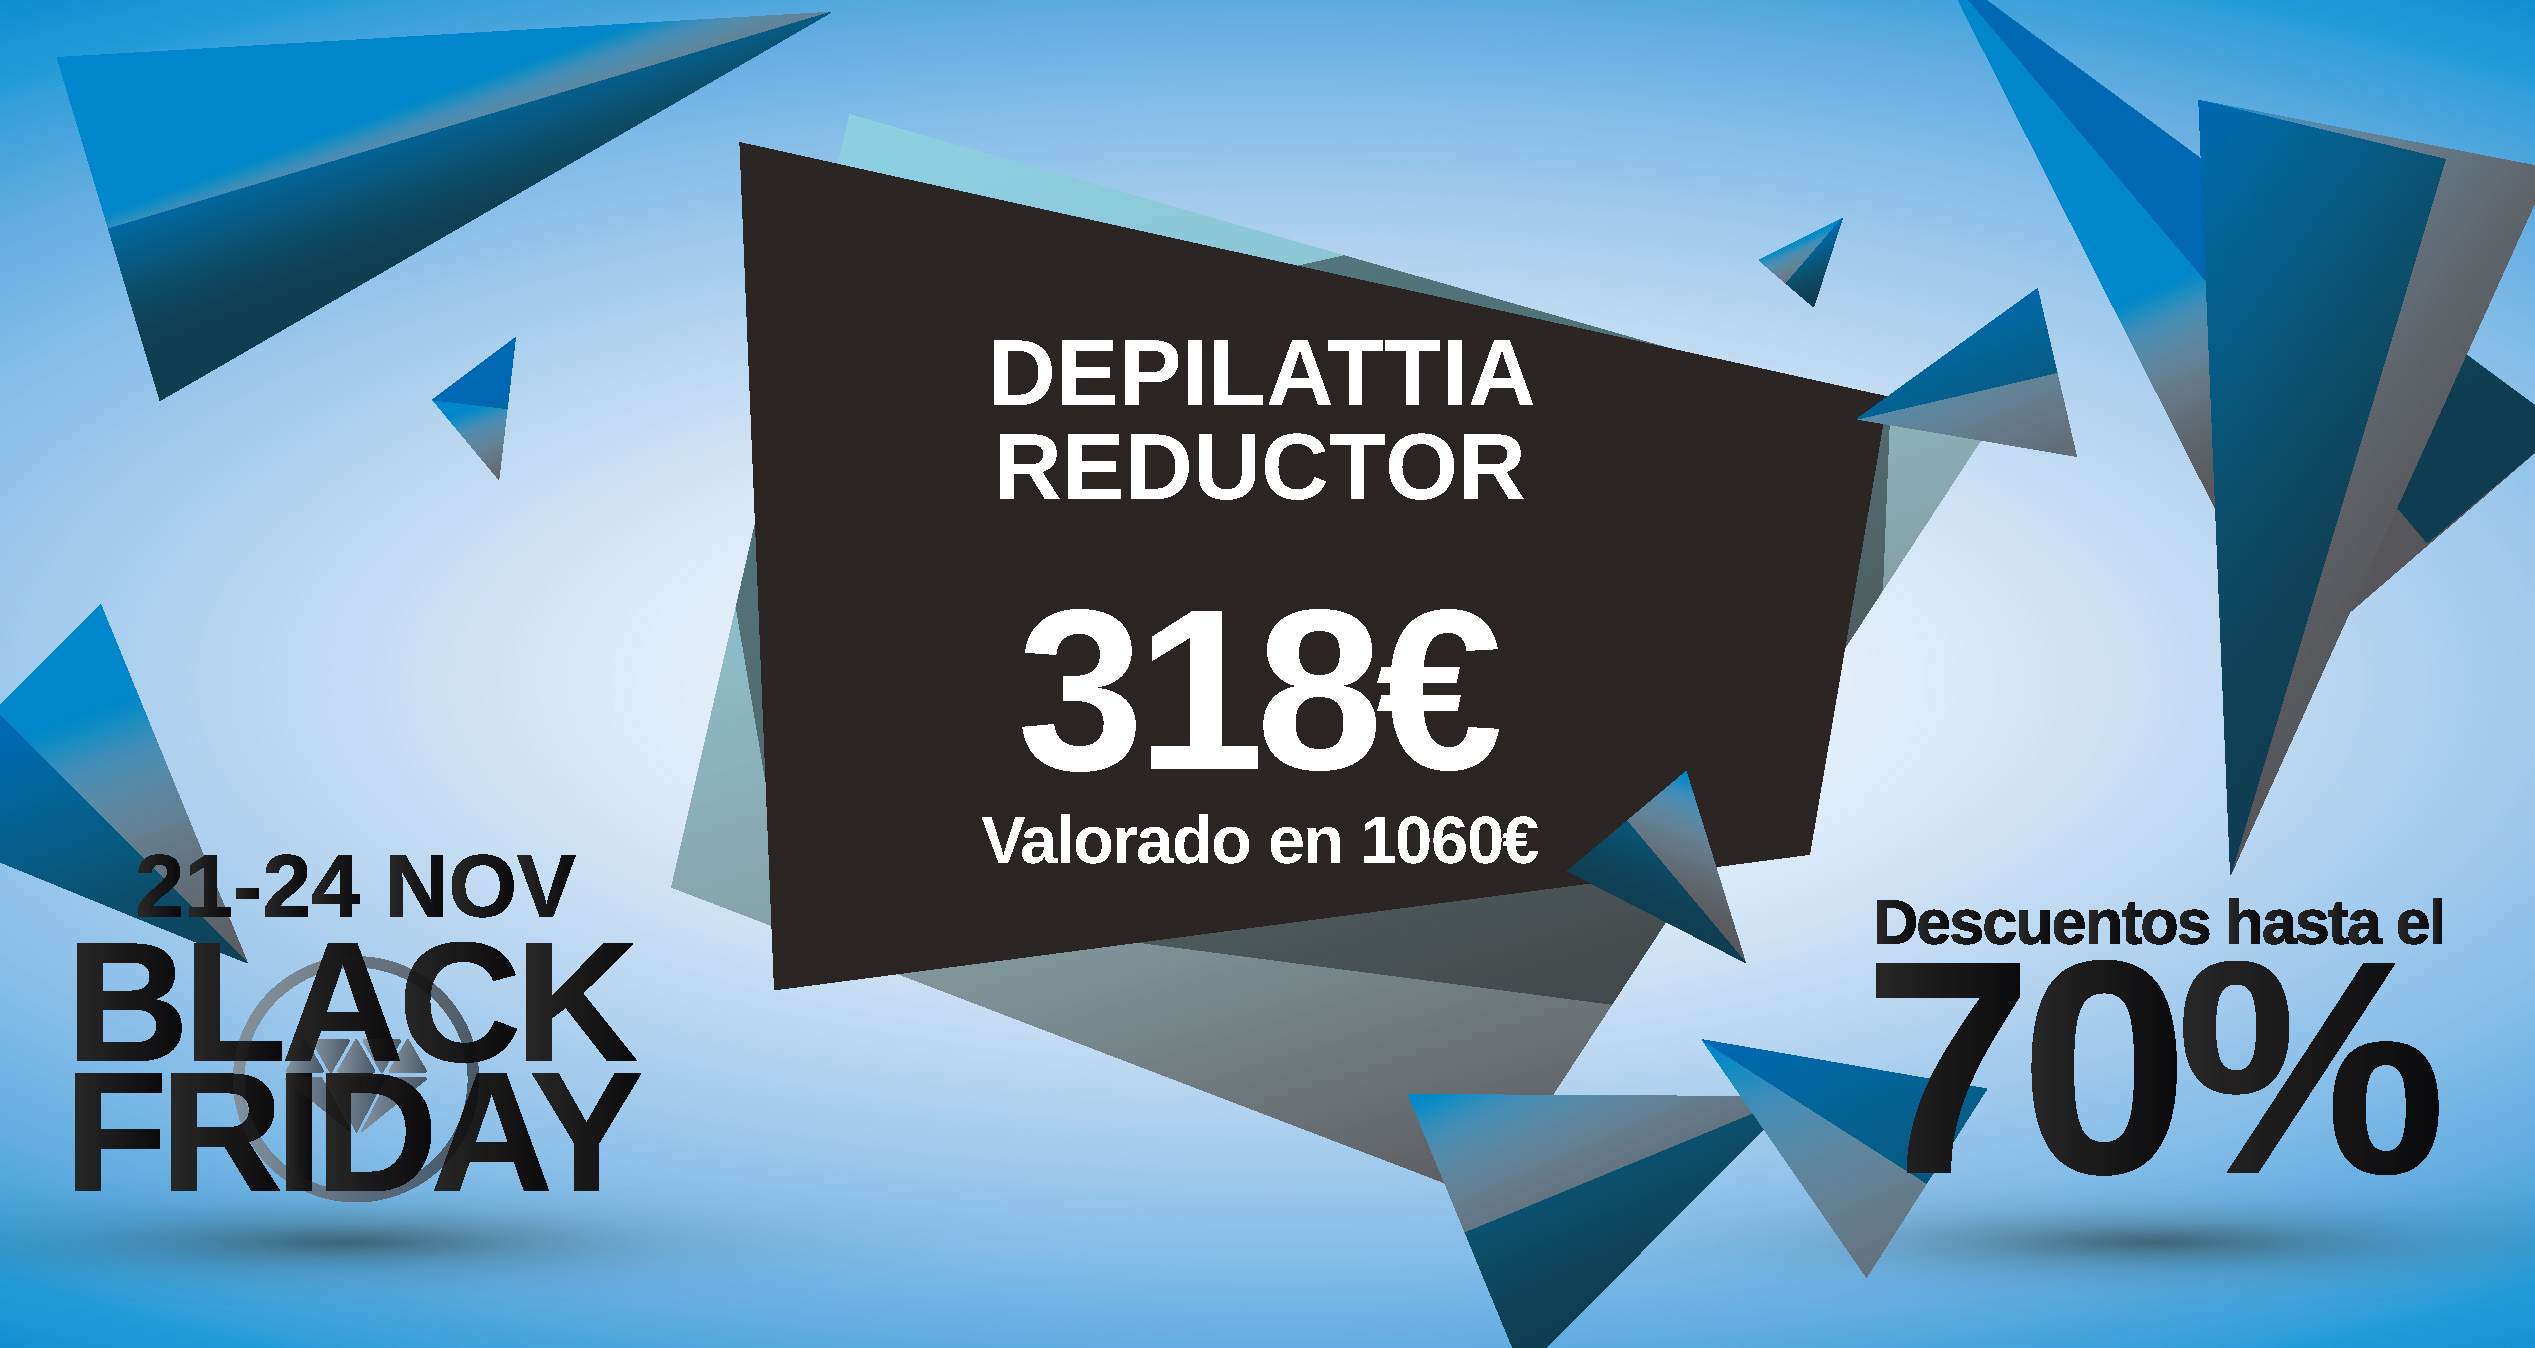 AAFF-Black-friday-depilattia-spa_reductor-FACEBOOK